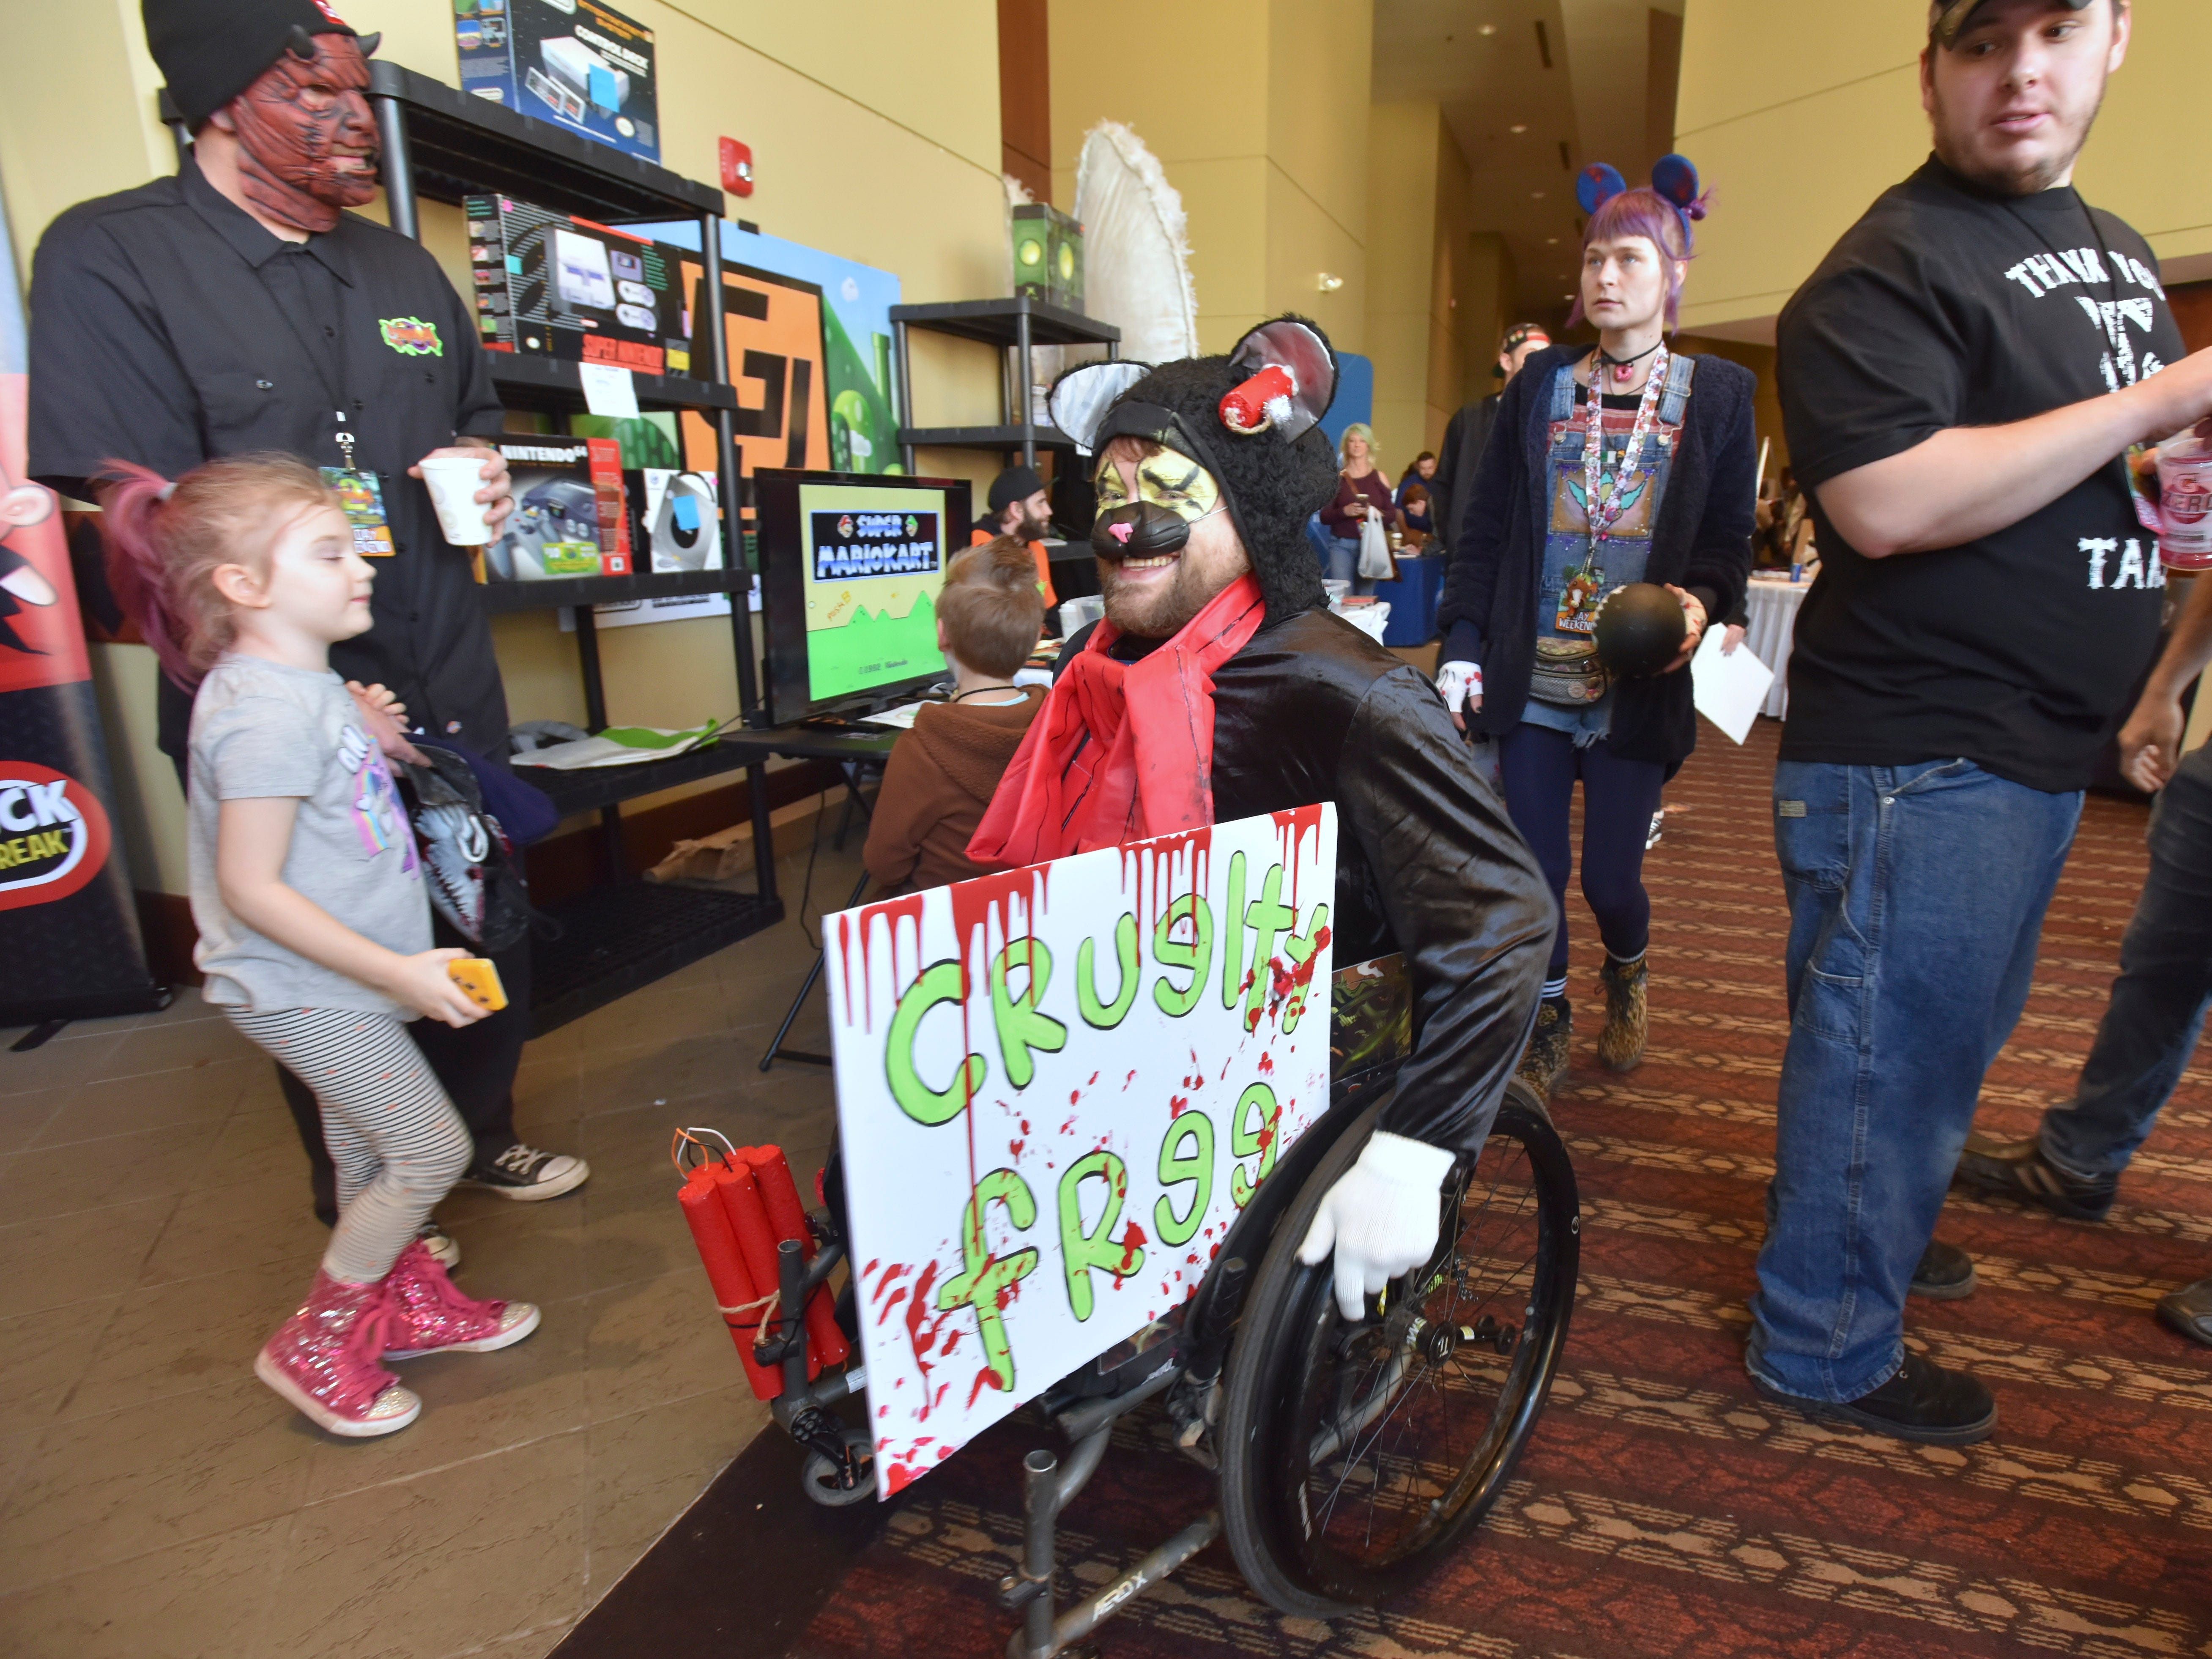 Christopher Allen McCoy, 34, of Indianapolis, portrays 'Scratchy,' from 'Ichy and Scratchy,' as he arrives at the convention. McCoy is in a wheelchair after losing both legs and his right hand when a moped he was riding exploded nine years ago.